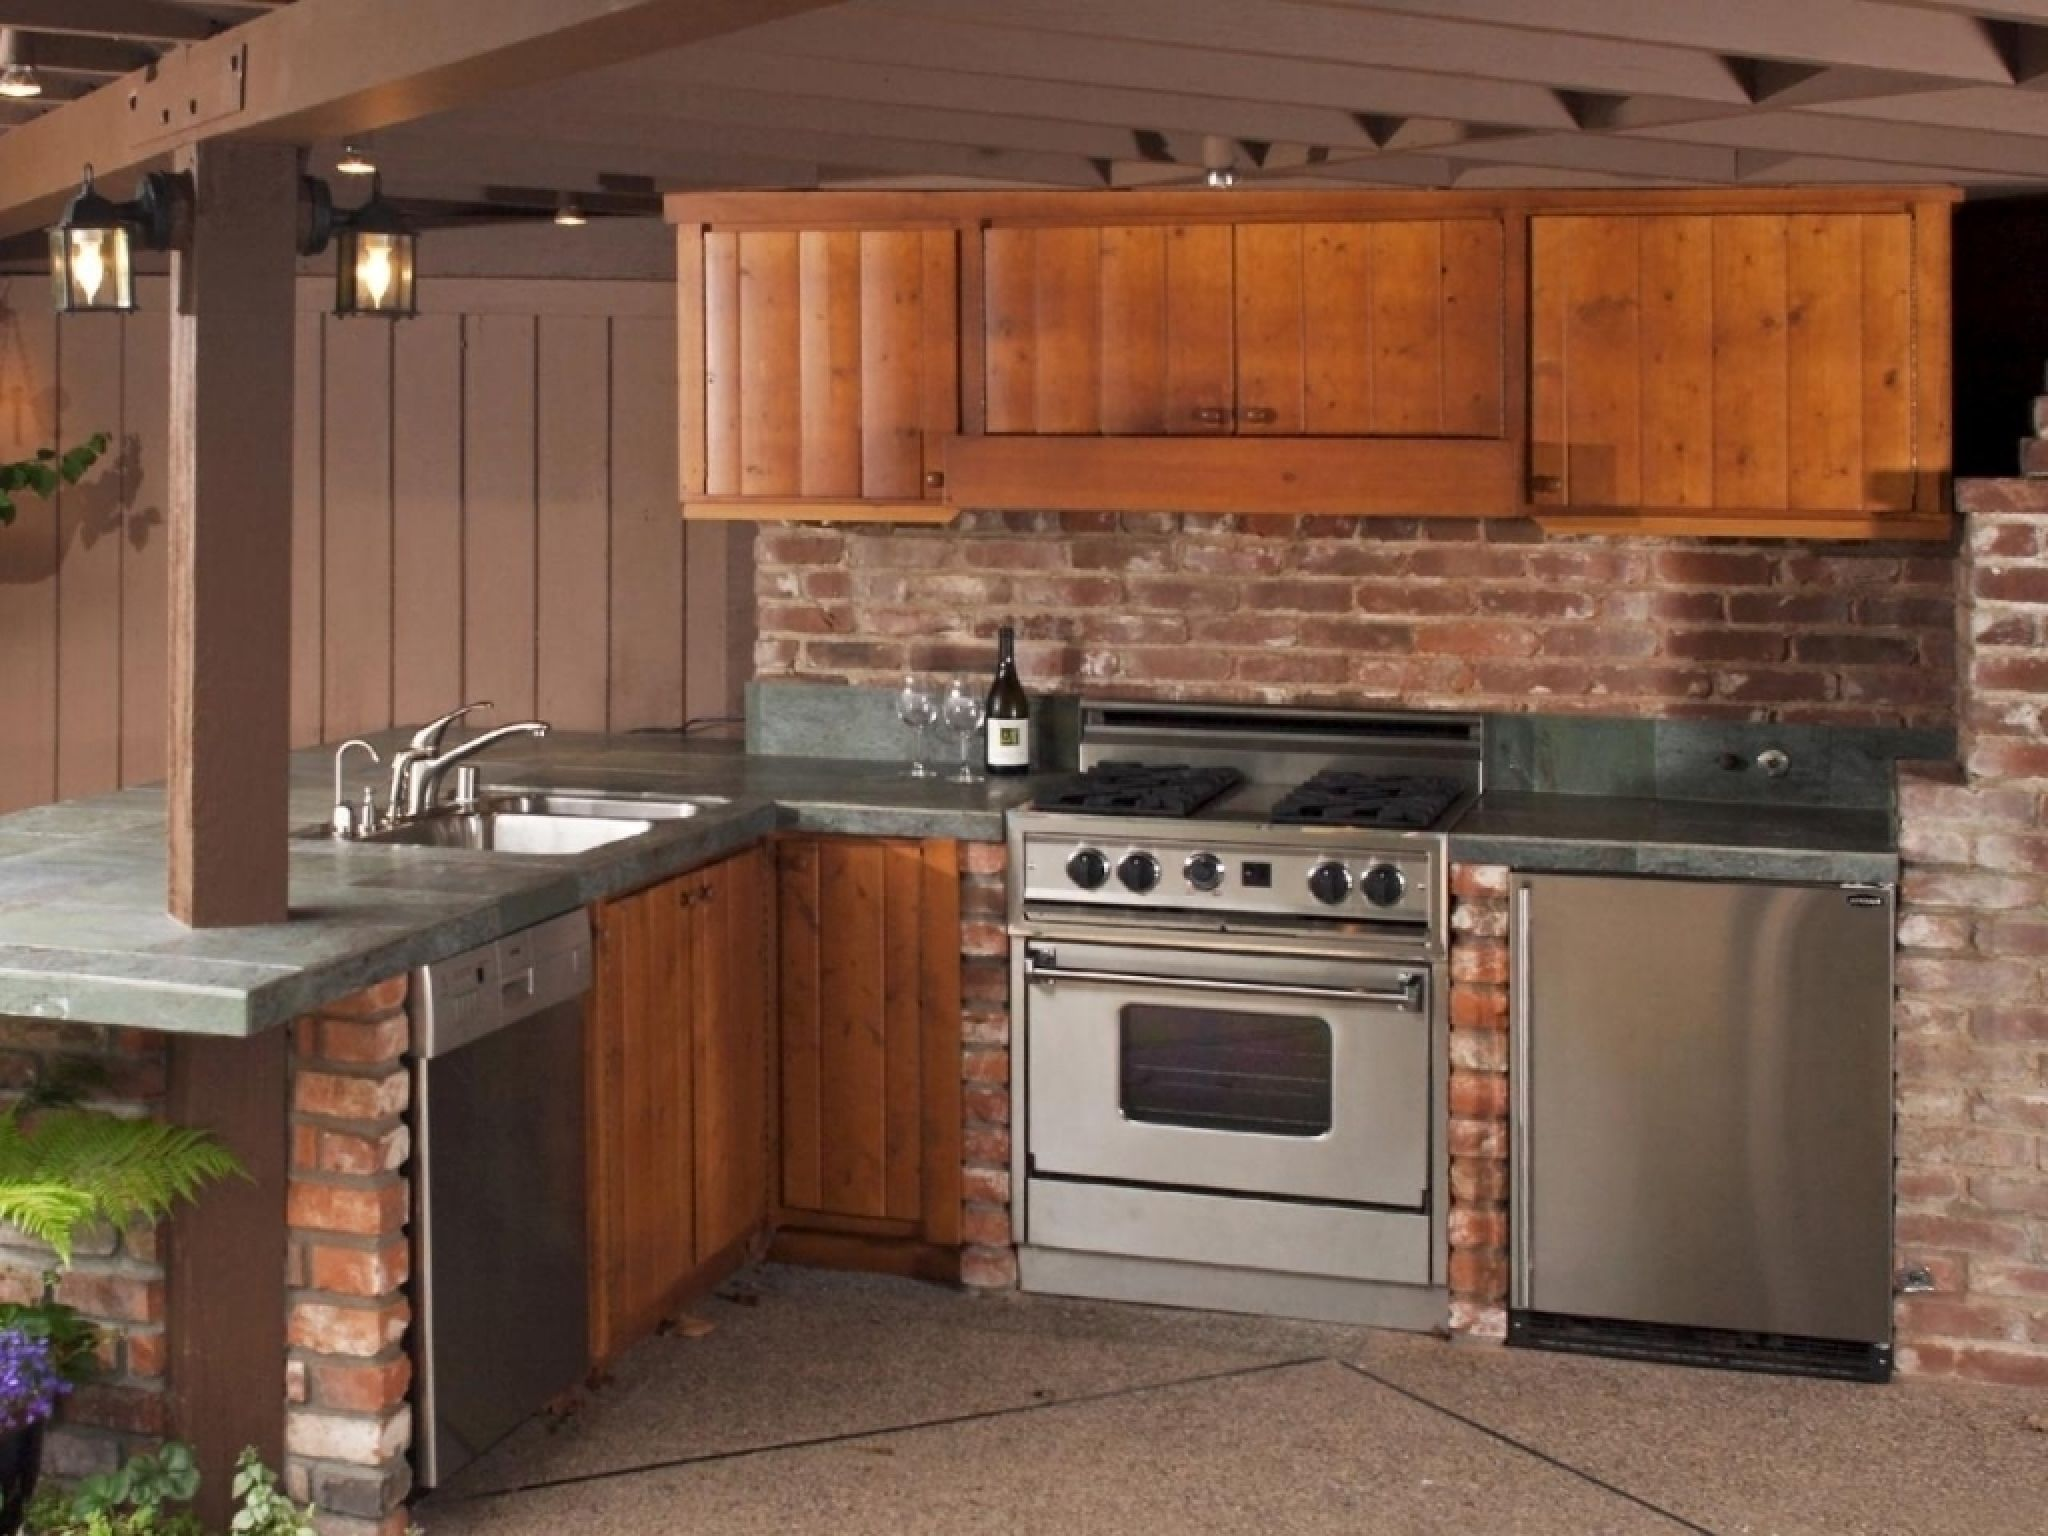 Lowes Outdoor Kitchen Cabinets  Best Interior Wall Paint  Home Mesmerizing Best Outdoor Kitchen Designs Design Ideas